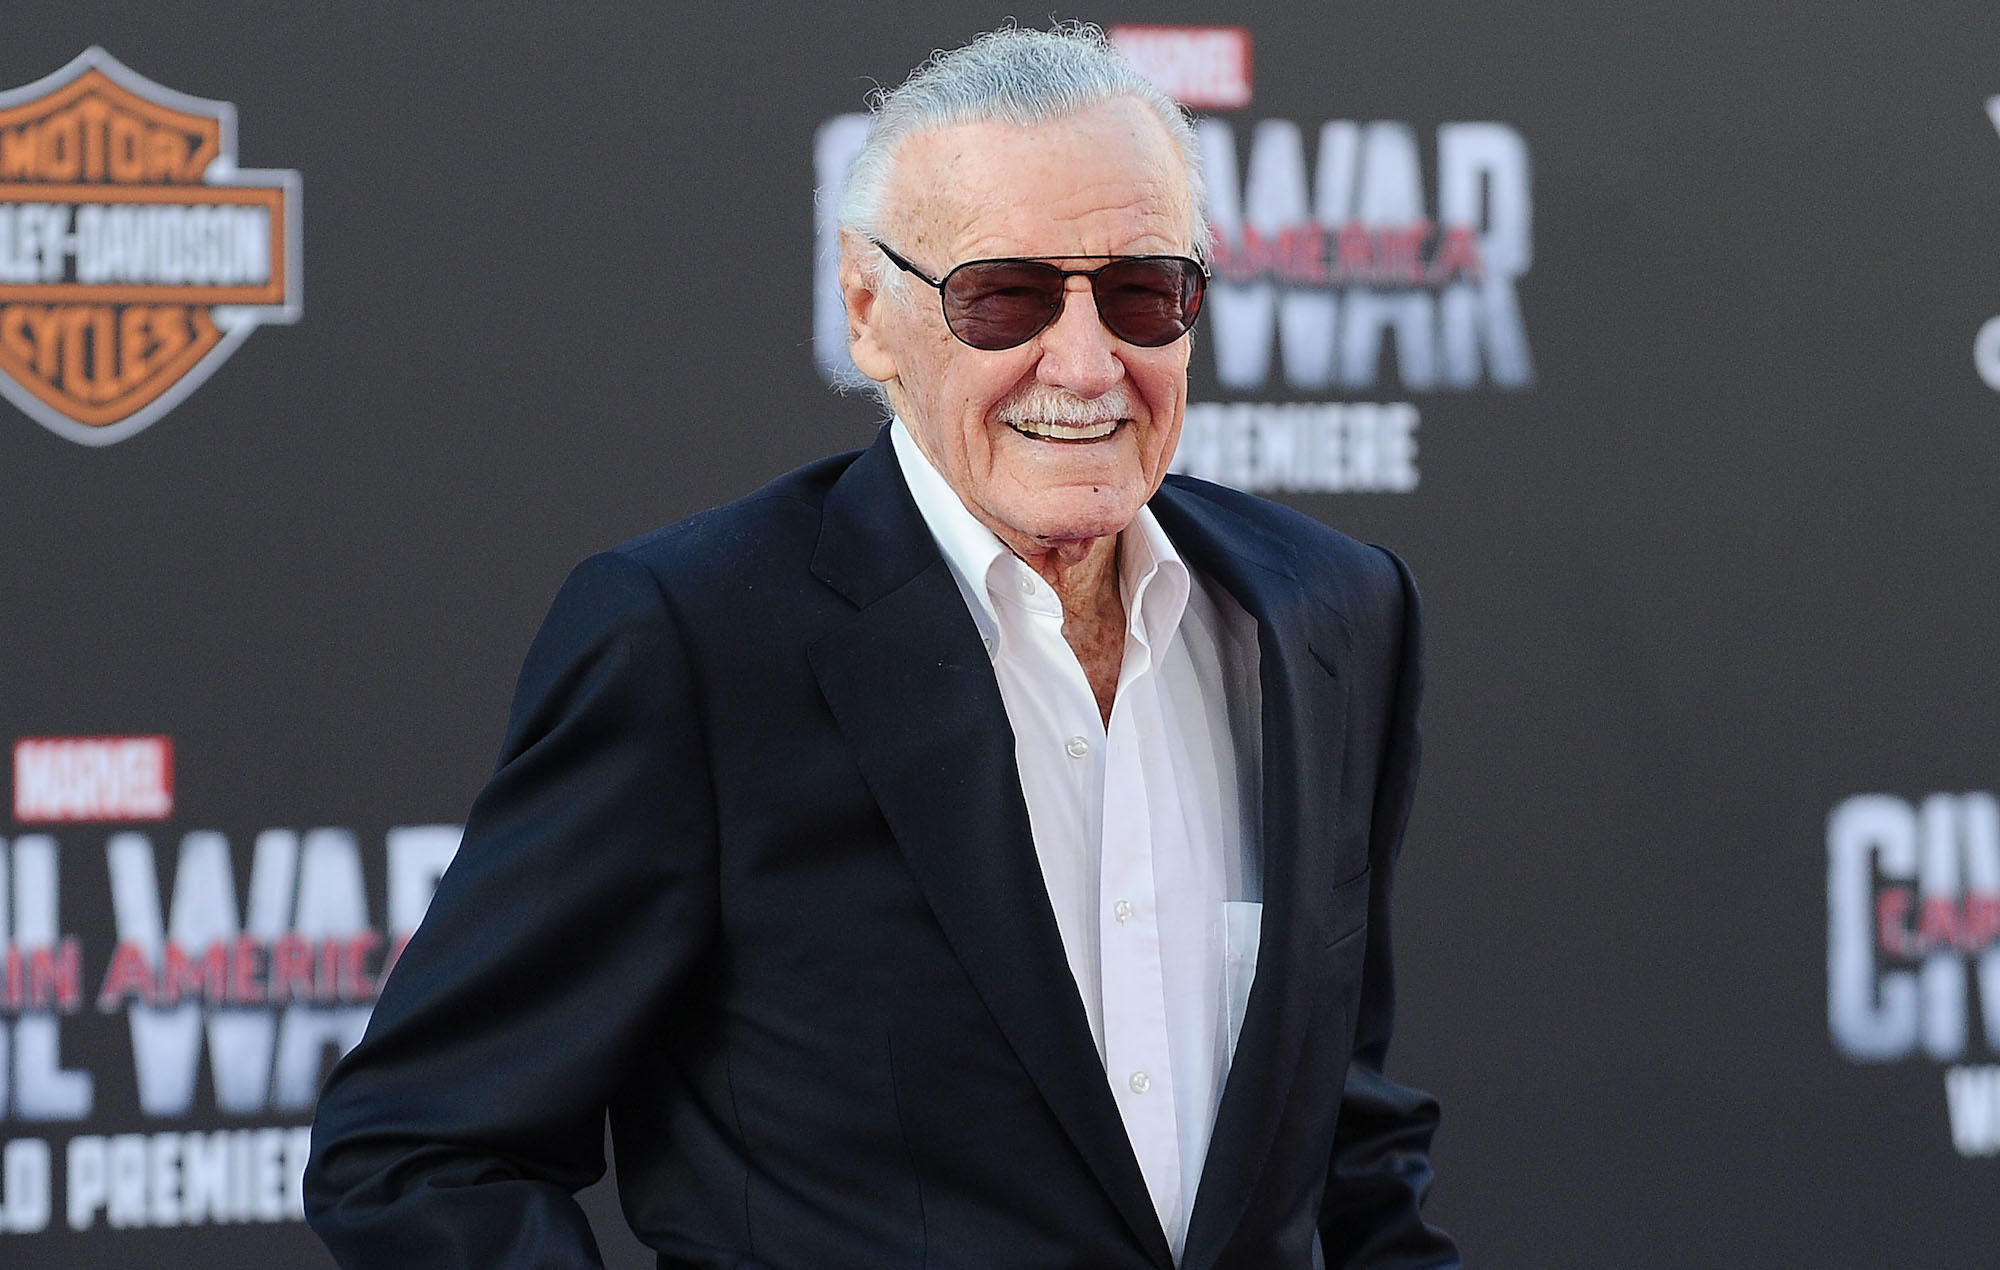 From the MCU and beyond: every cameo Stan Lee made https://t.co/NNsNlrCJK6 https://t.co/07NUh6sTMf